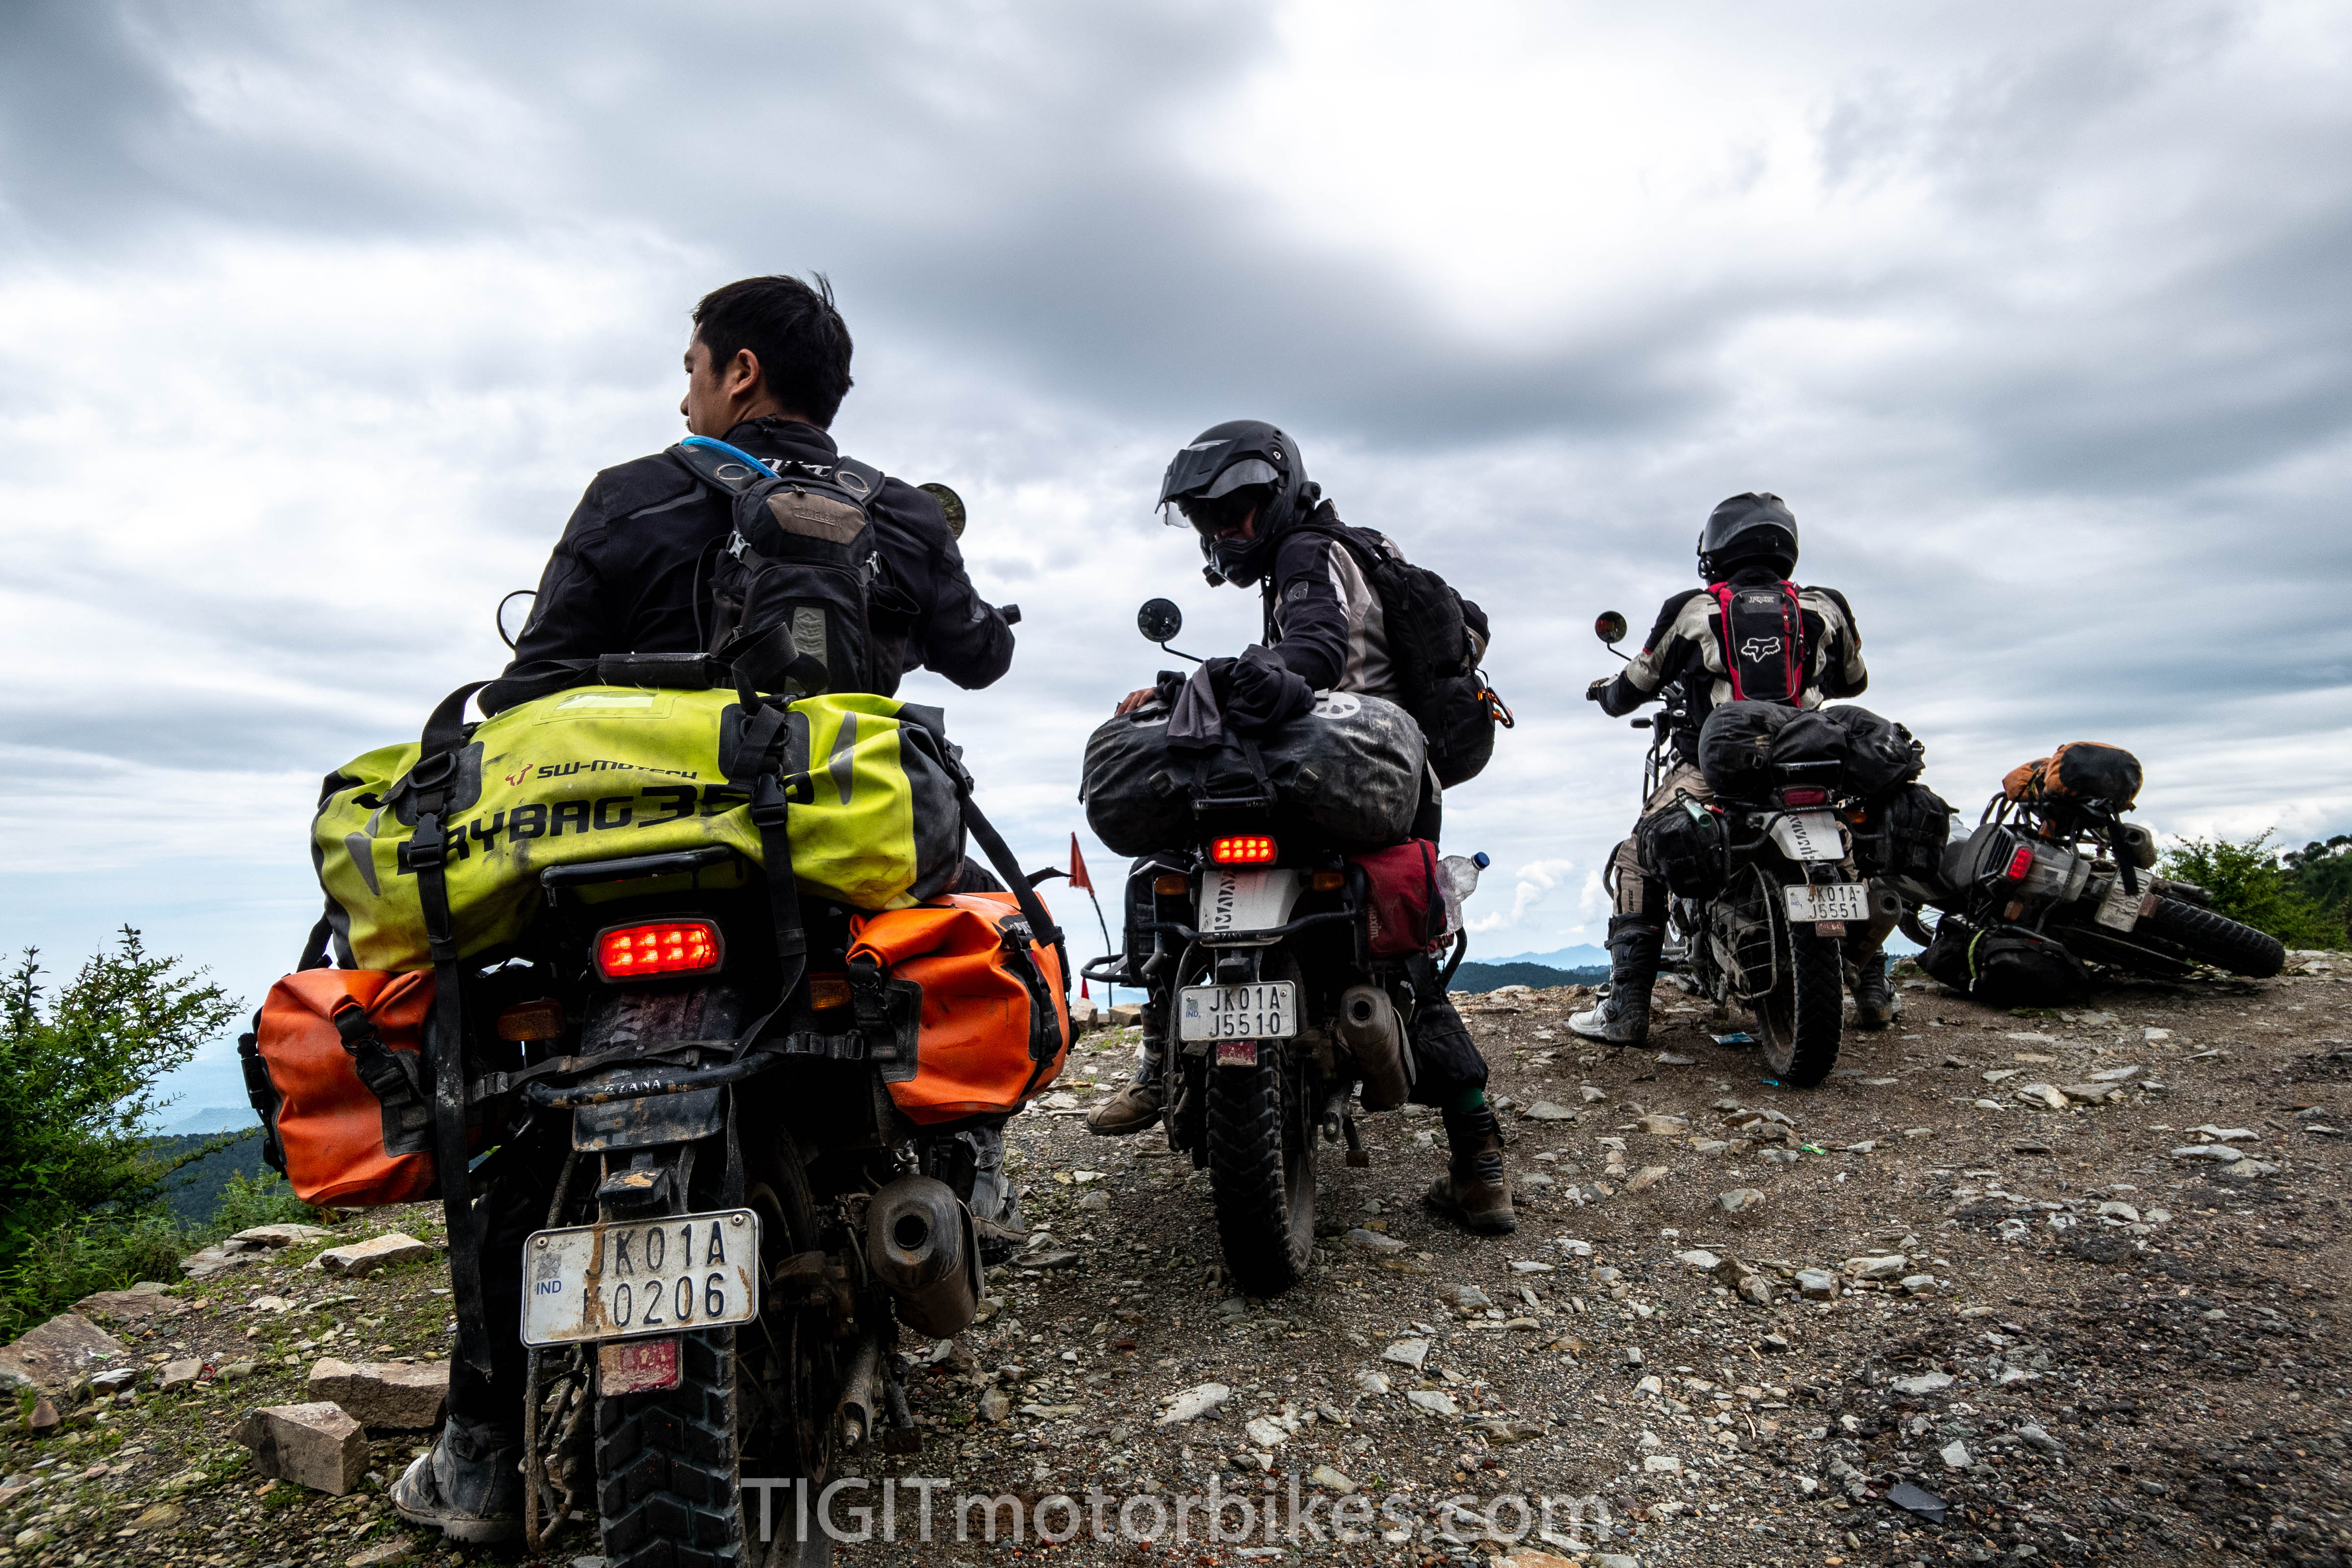 ADV riders overlooking a cliff in the Himalayas